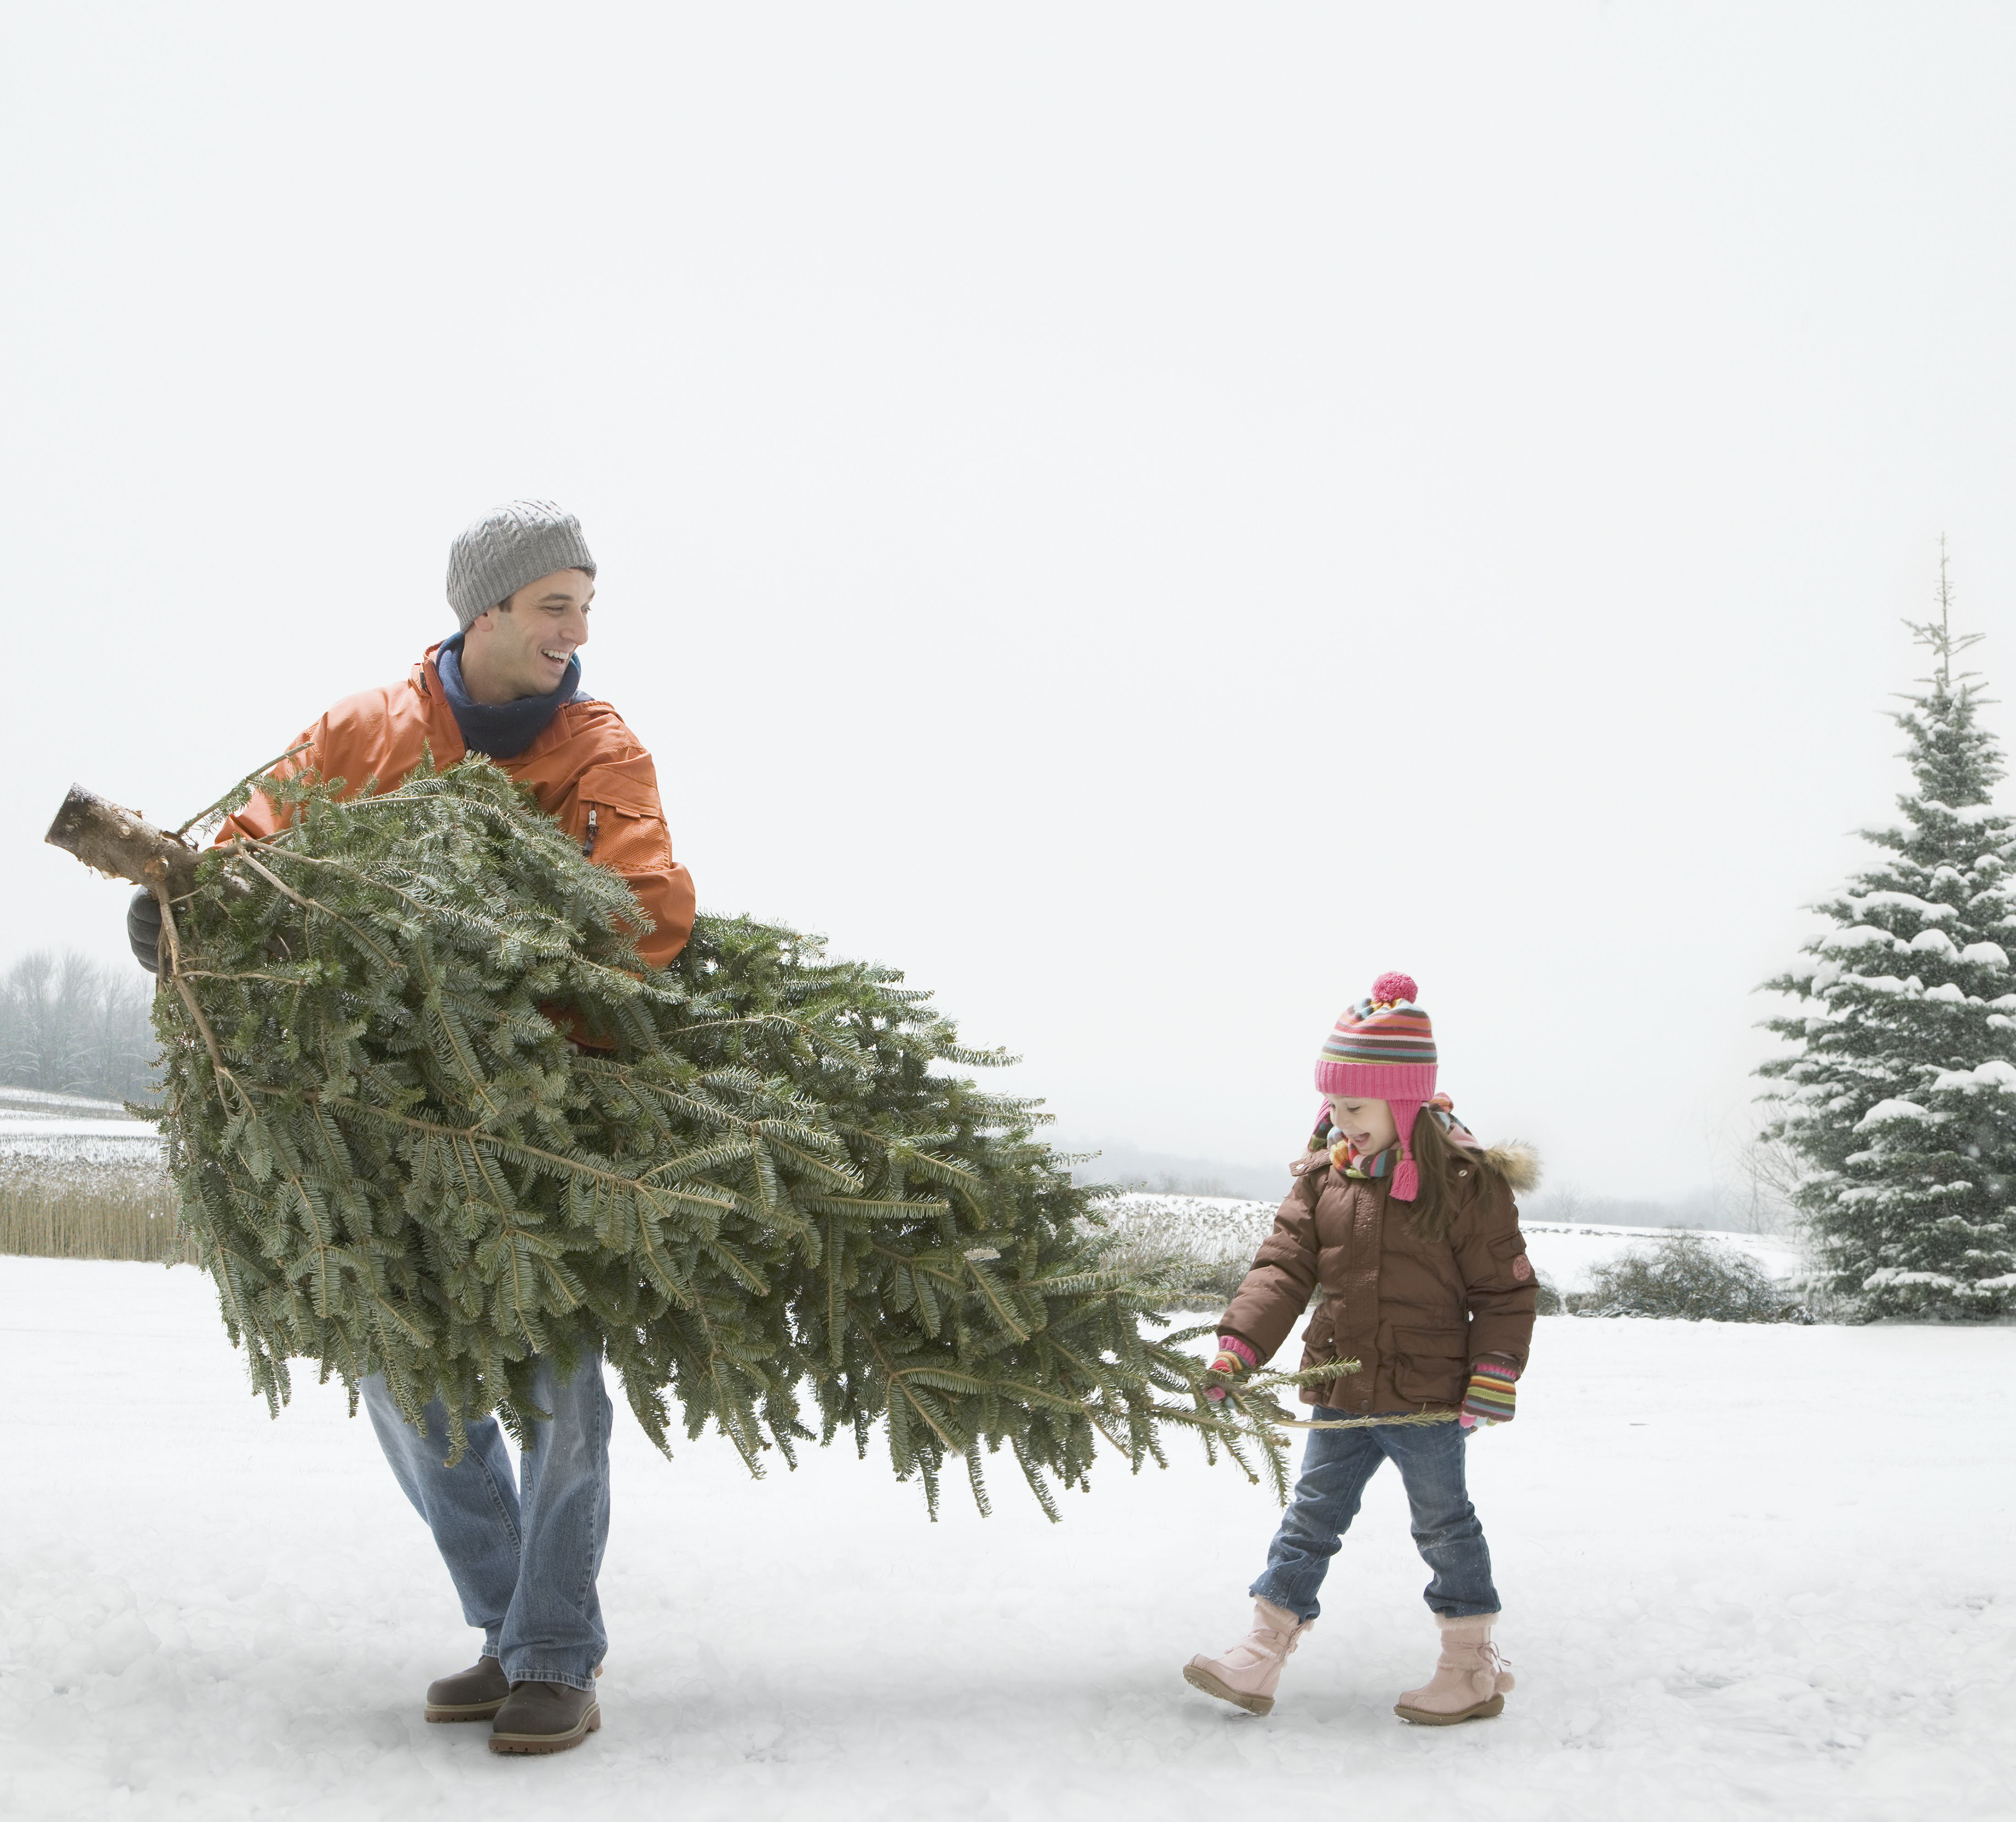 The Best Evergreens For Christmas Trees - Plant Christmas Trees